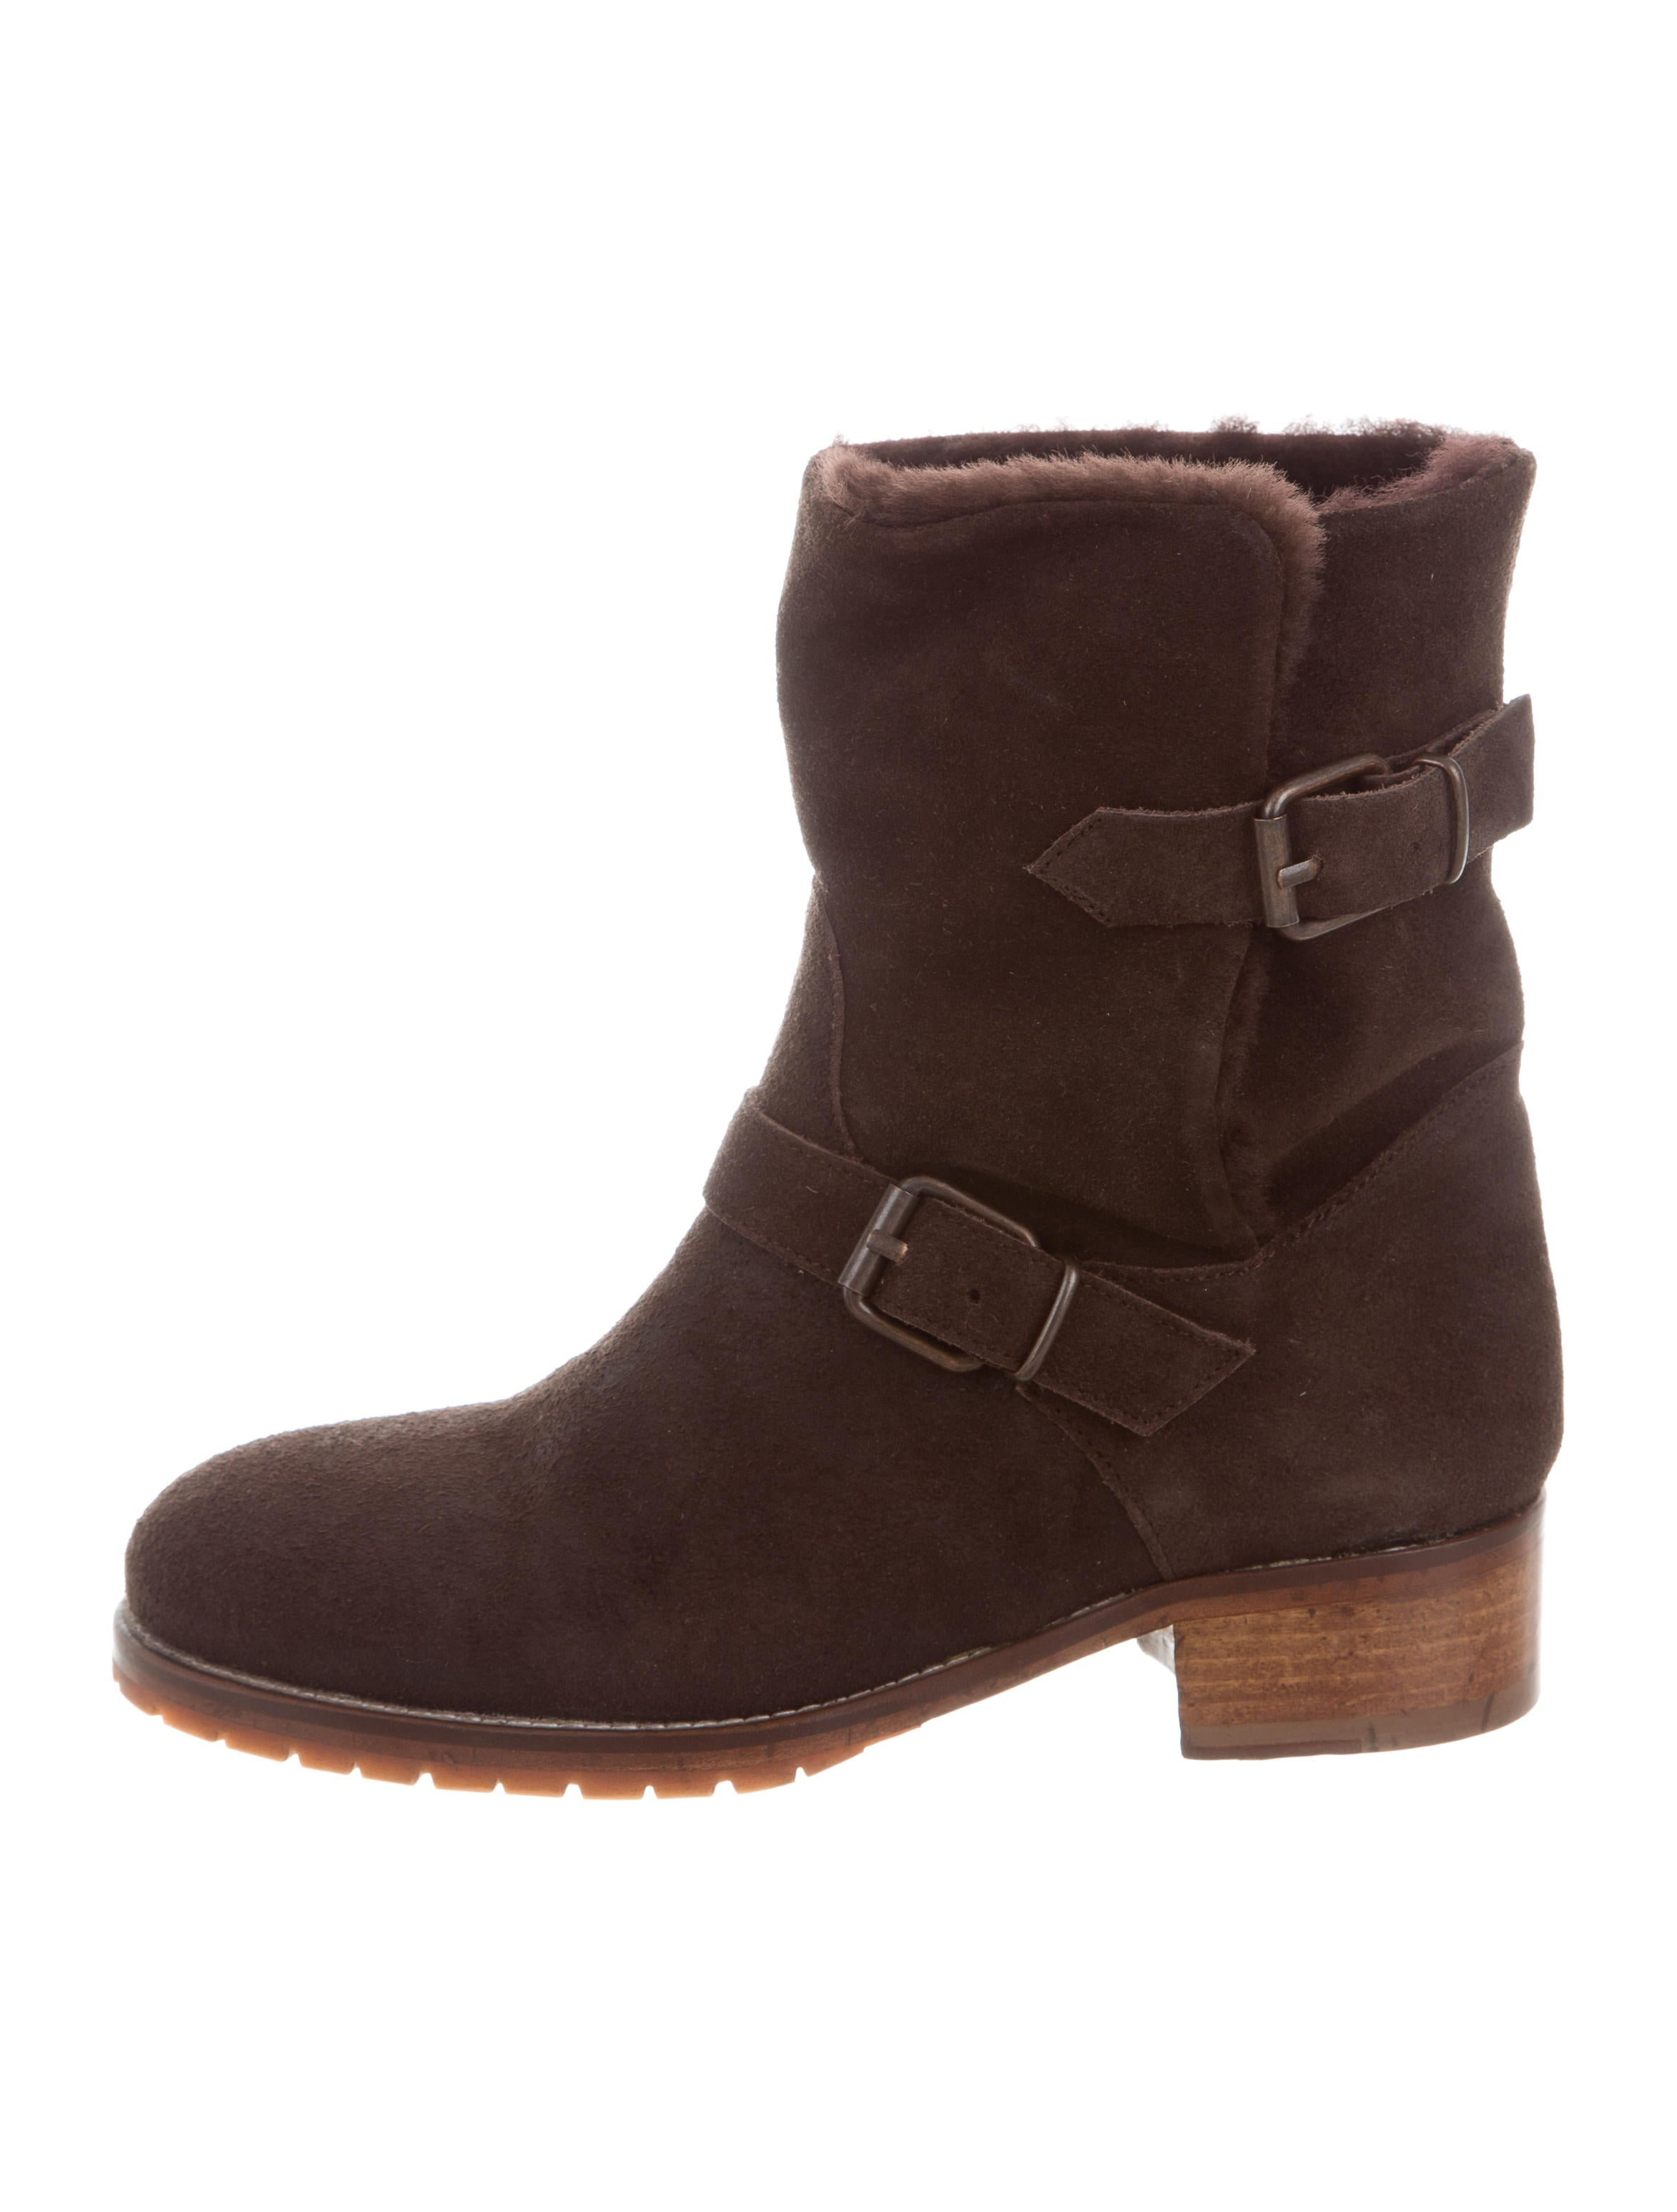 CHUCKiES New York Shearling-Lined Moto Ankle Boots wide range of sale online oex7x80Z